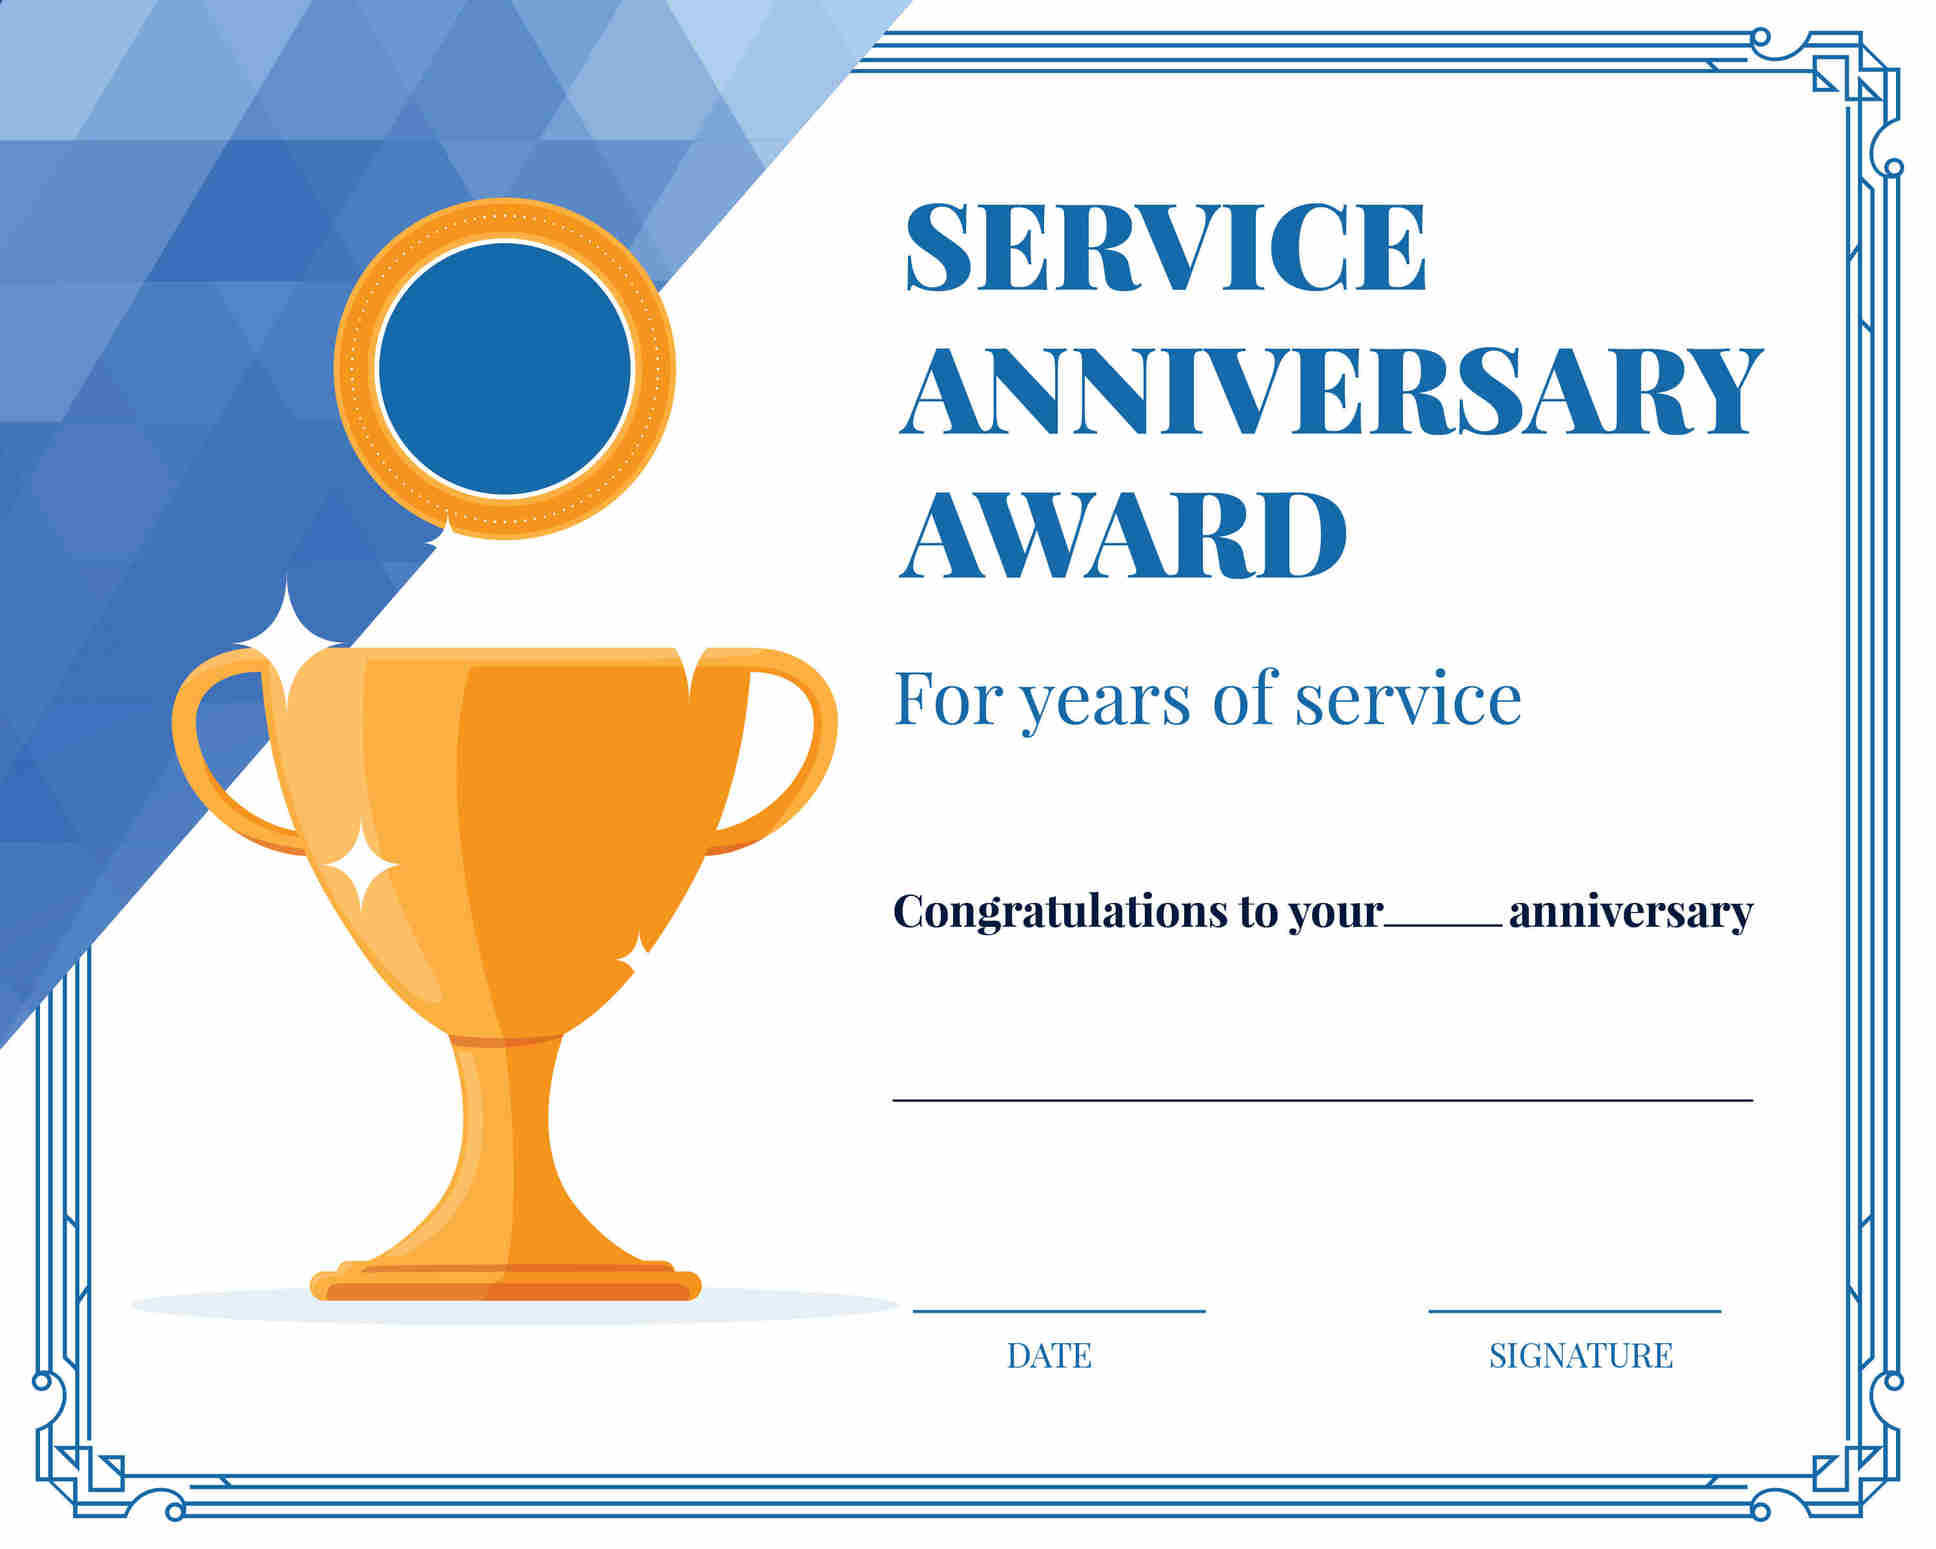 Years of work service award certificate template